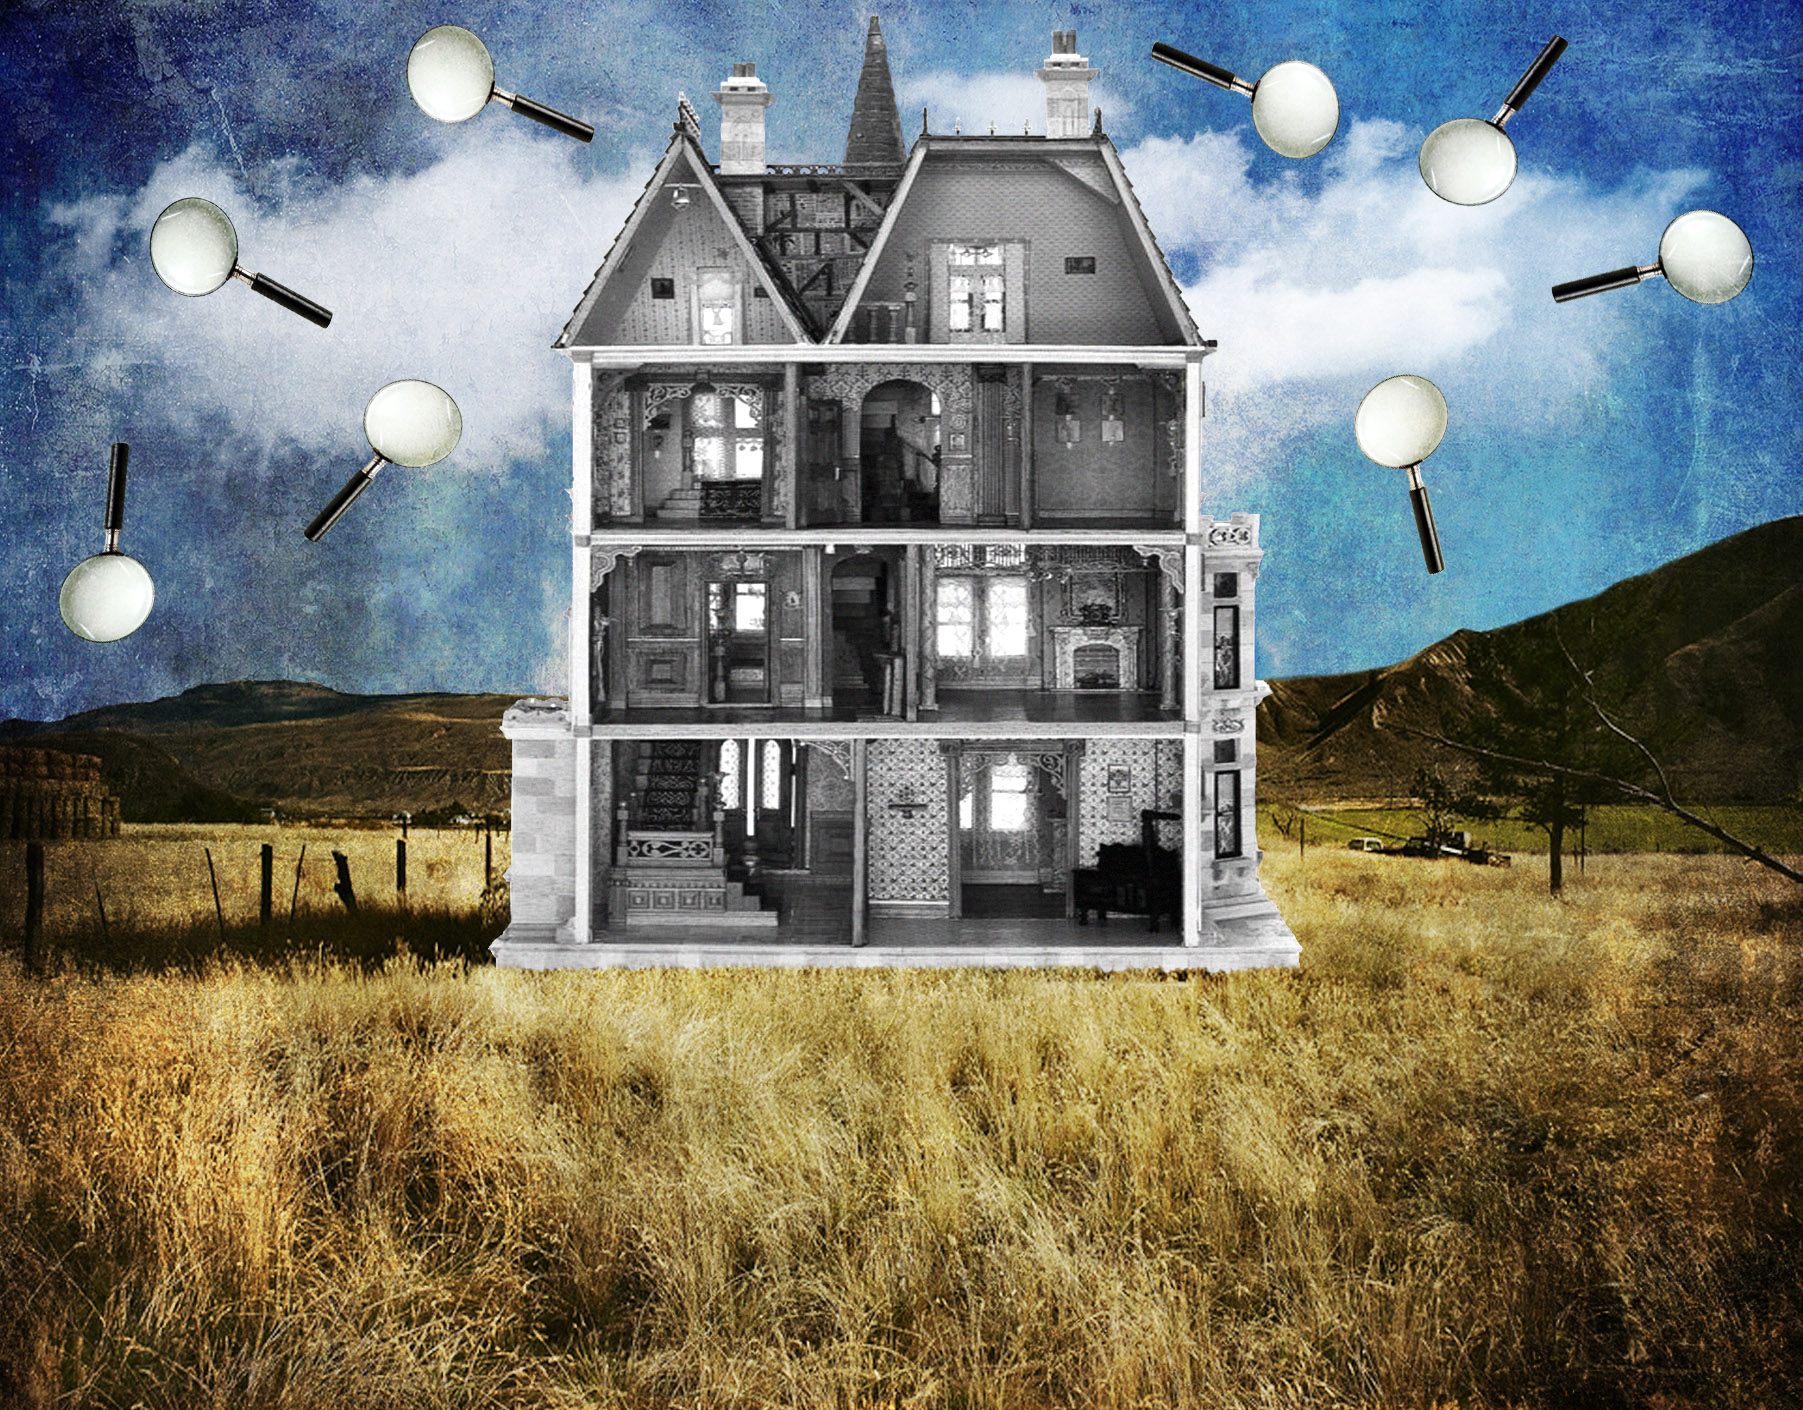 Jenkins, Cheyenne.  Privacy.  2014. Digital Collage. Montreal, Quebec